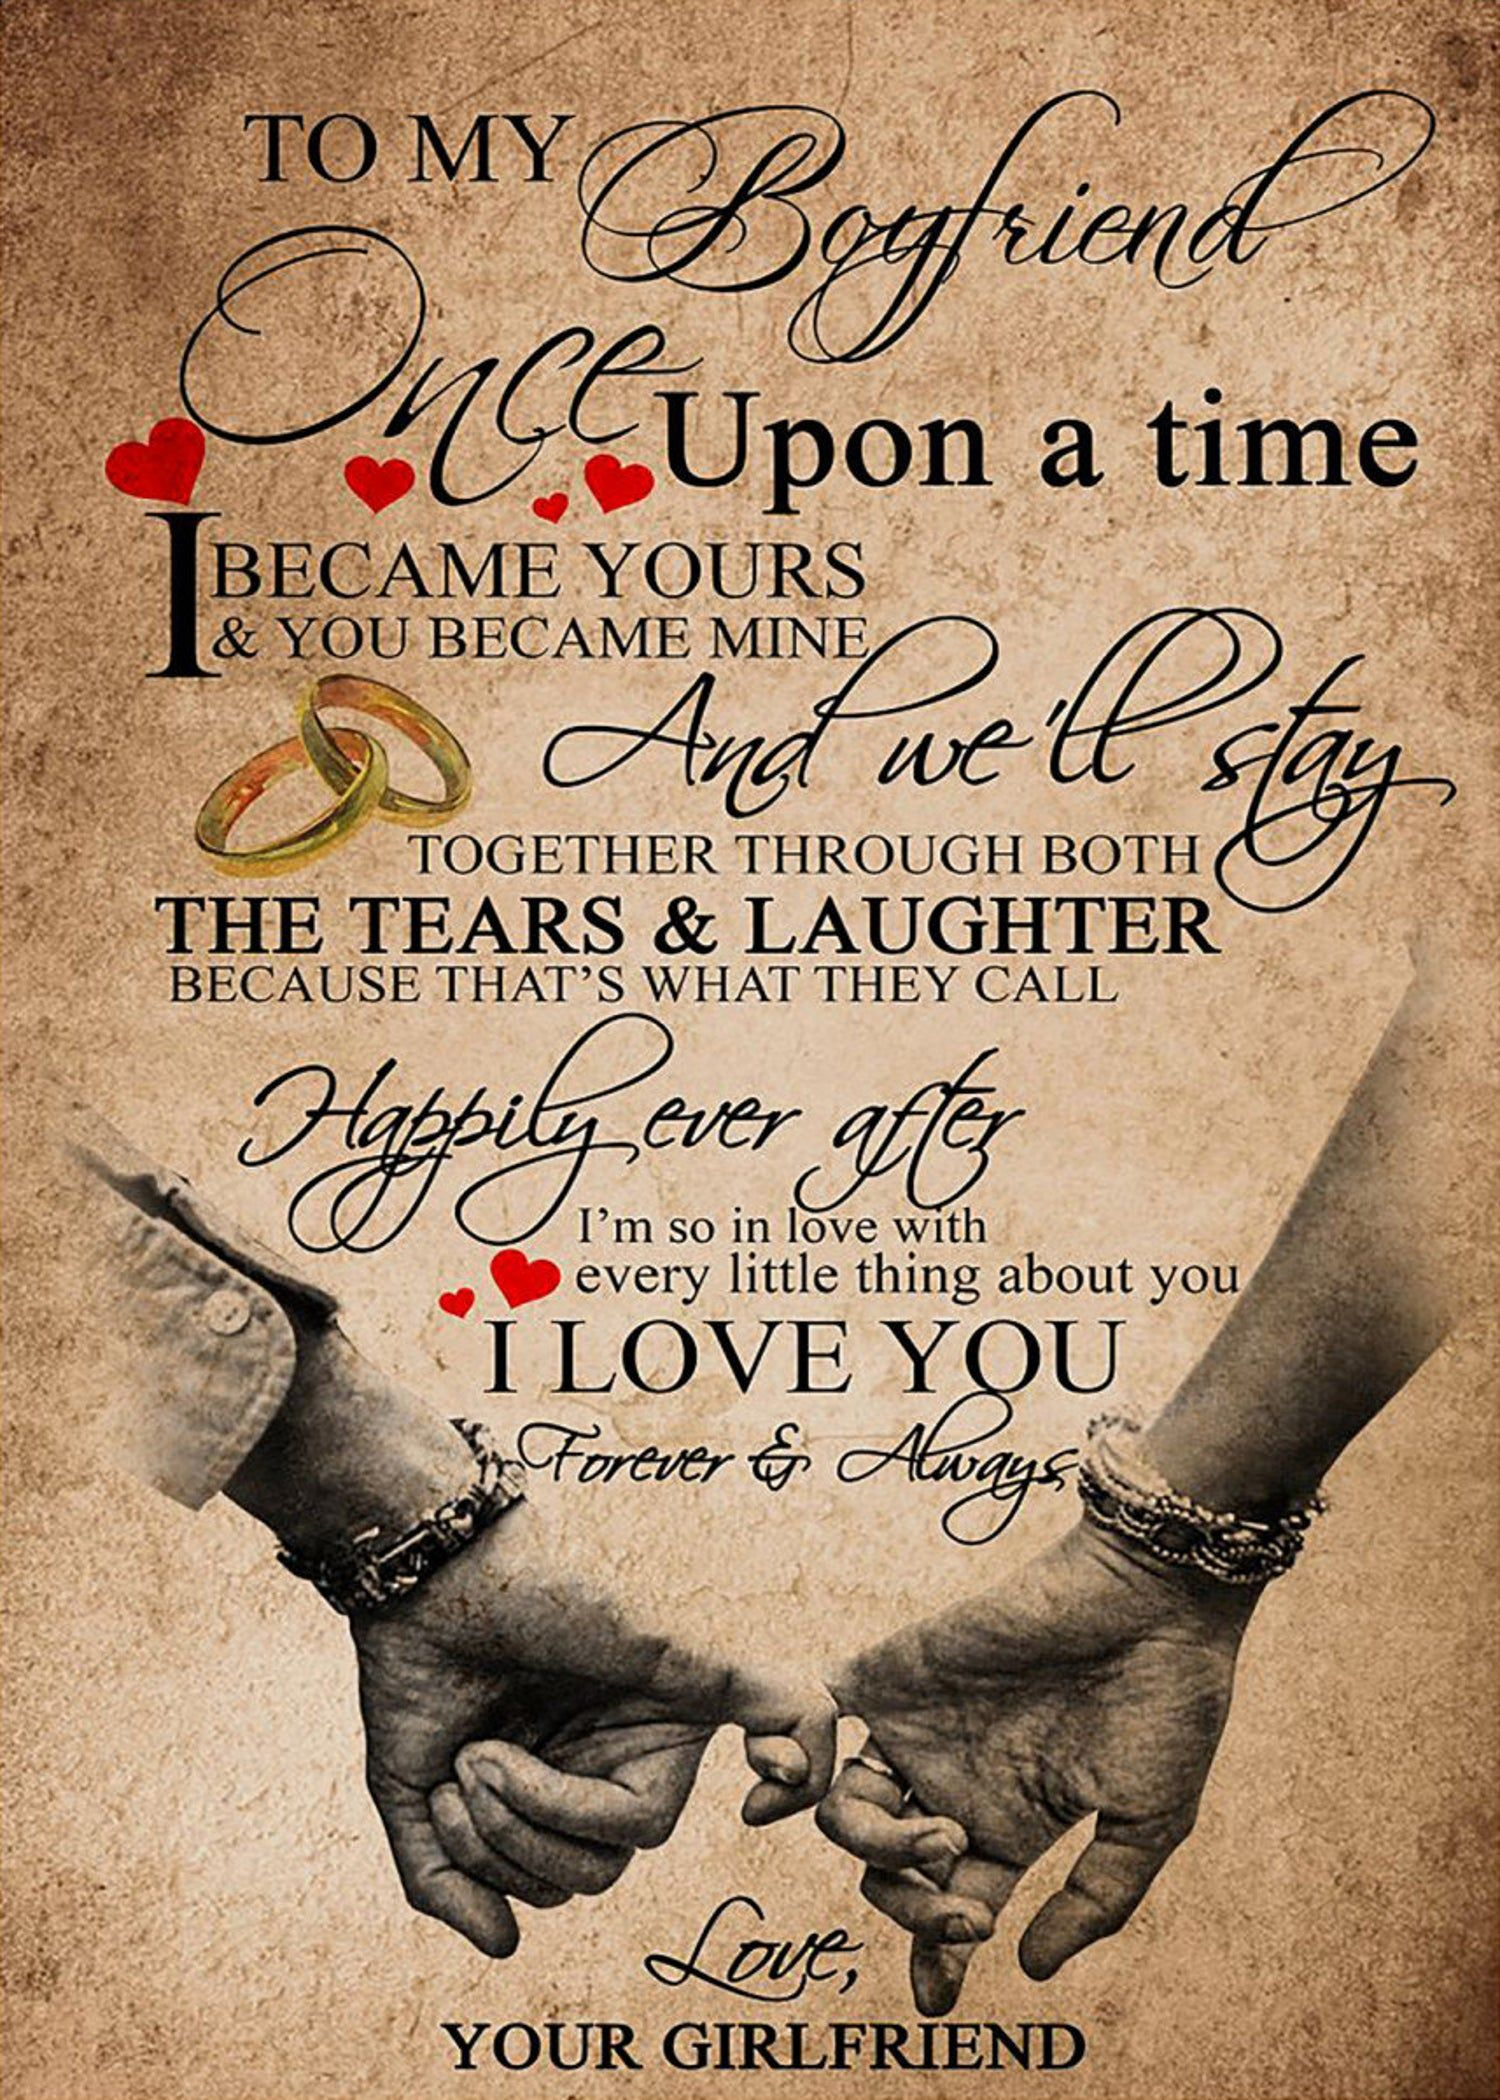 To My Boy Friend Once Upon A Time I Became Your And You Became Mine And We Ll Say Poster Home Decor Wall Art